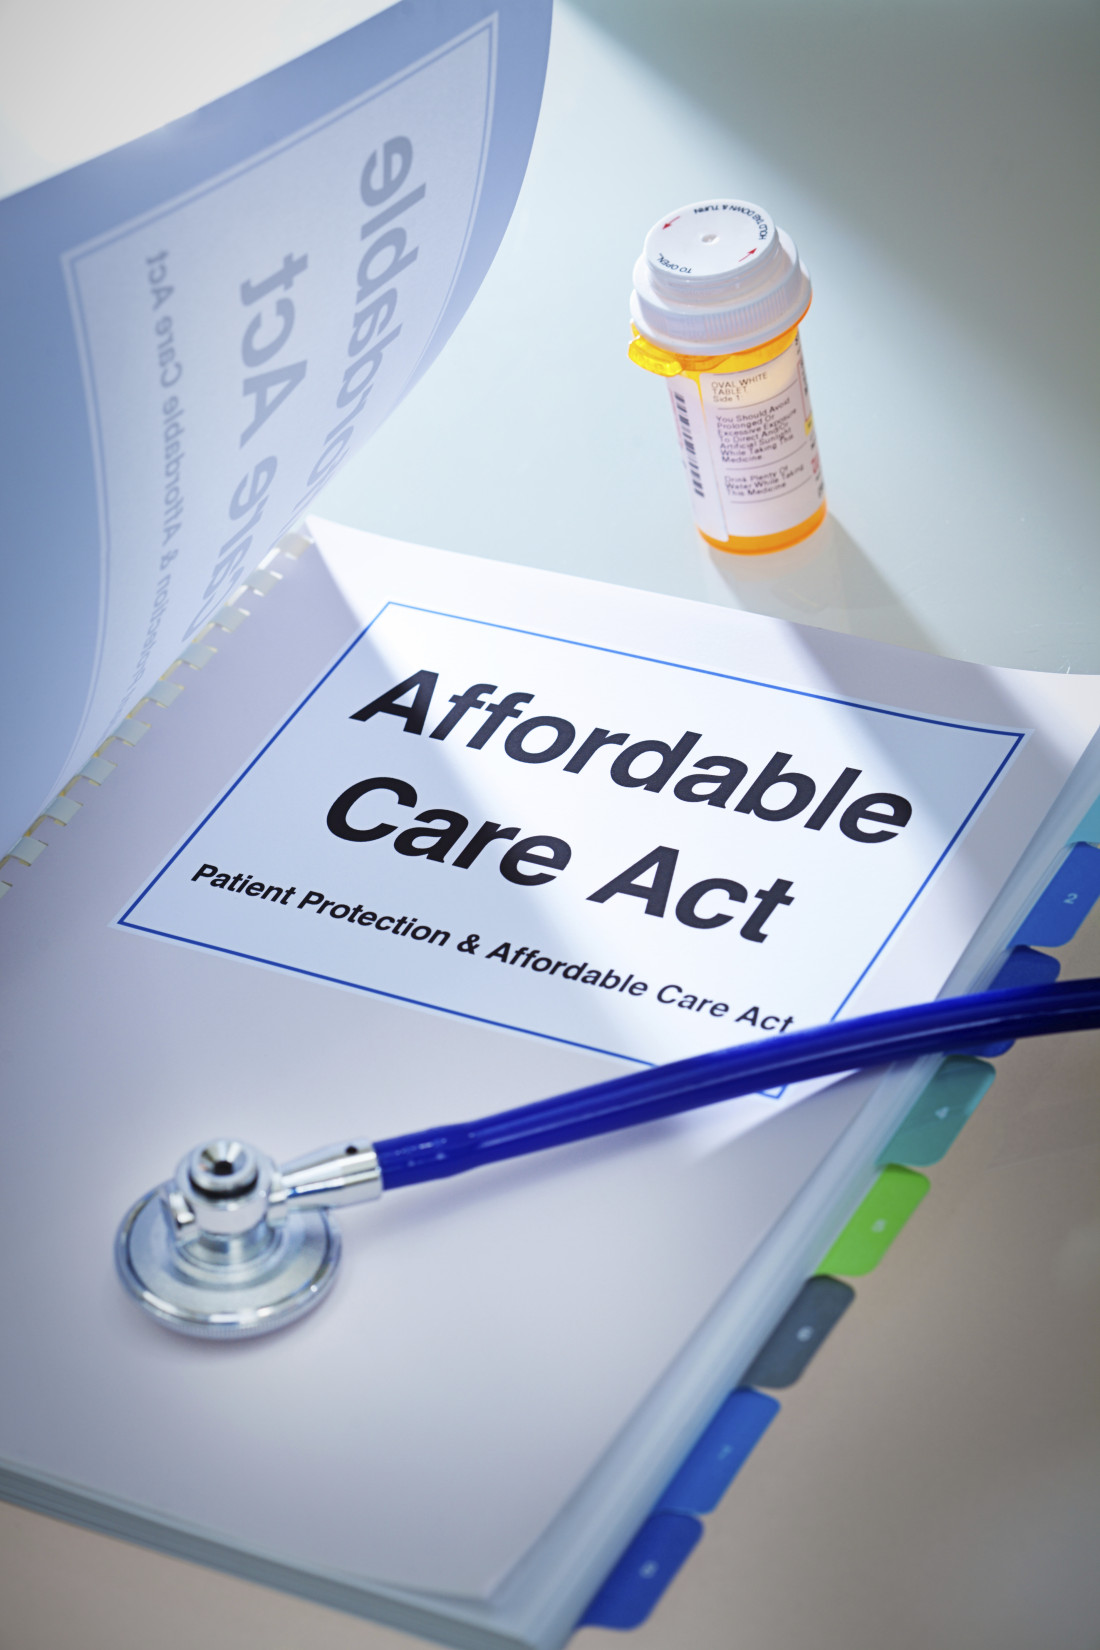 Legislation introduced to repeal portions of the Affordable Care Act